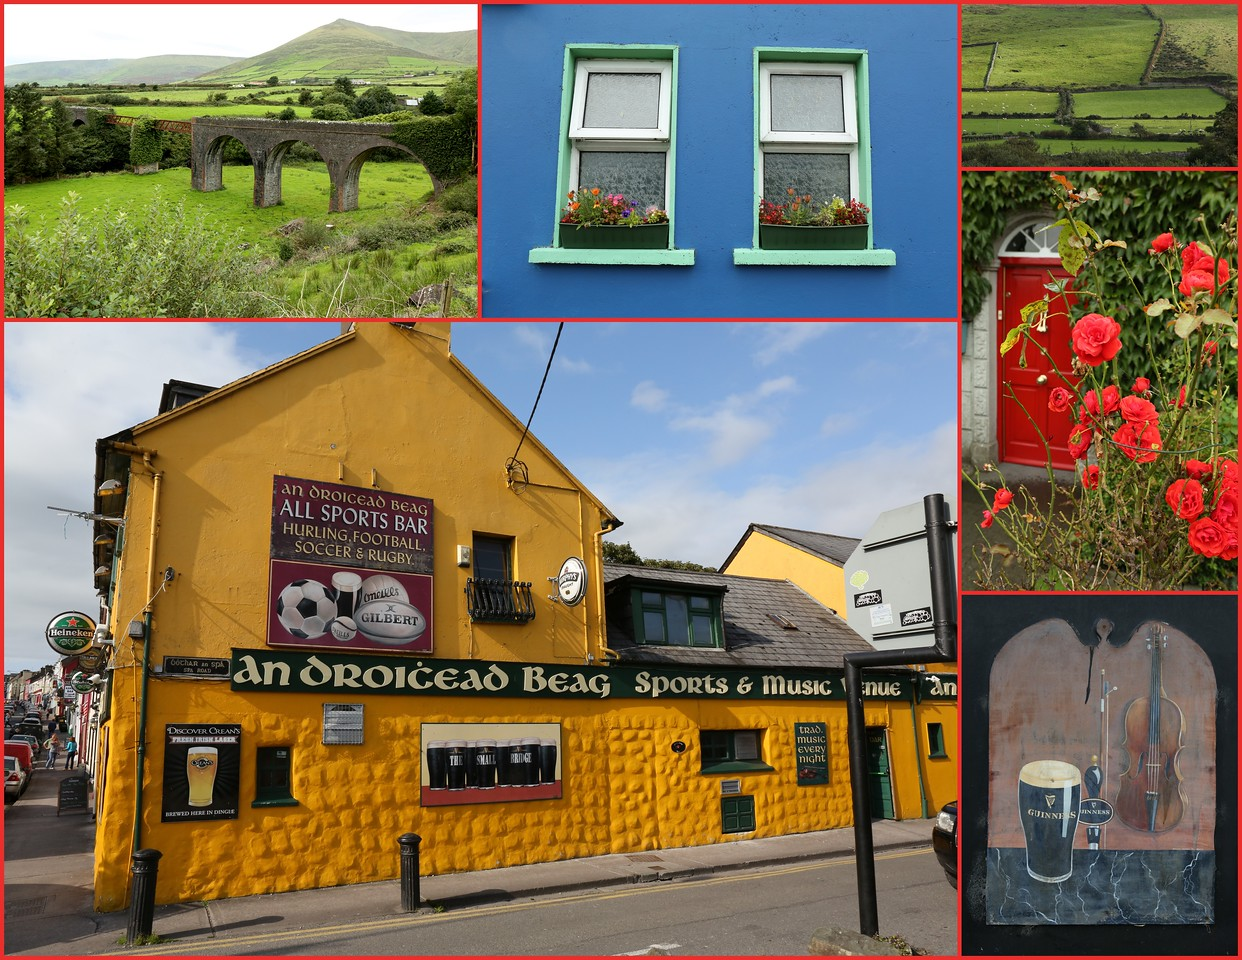 Our first full day in Ireland - Wednesday, September 14th, 2016